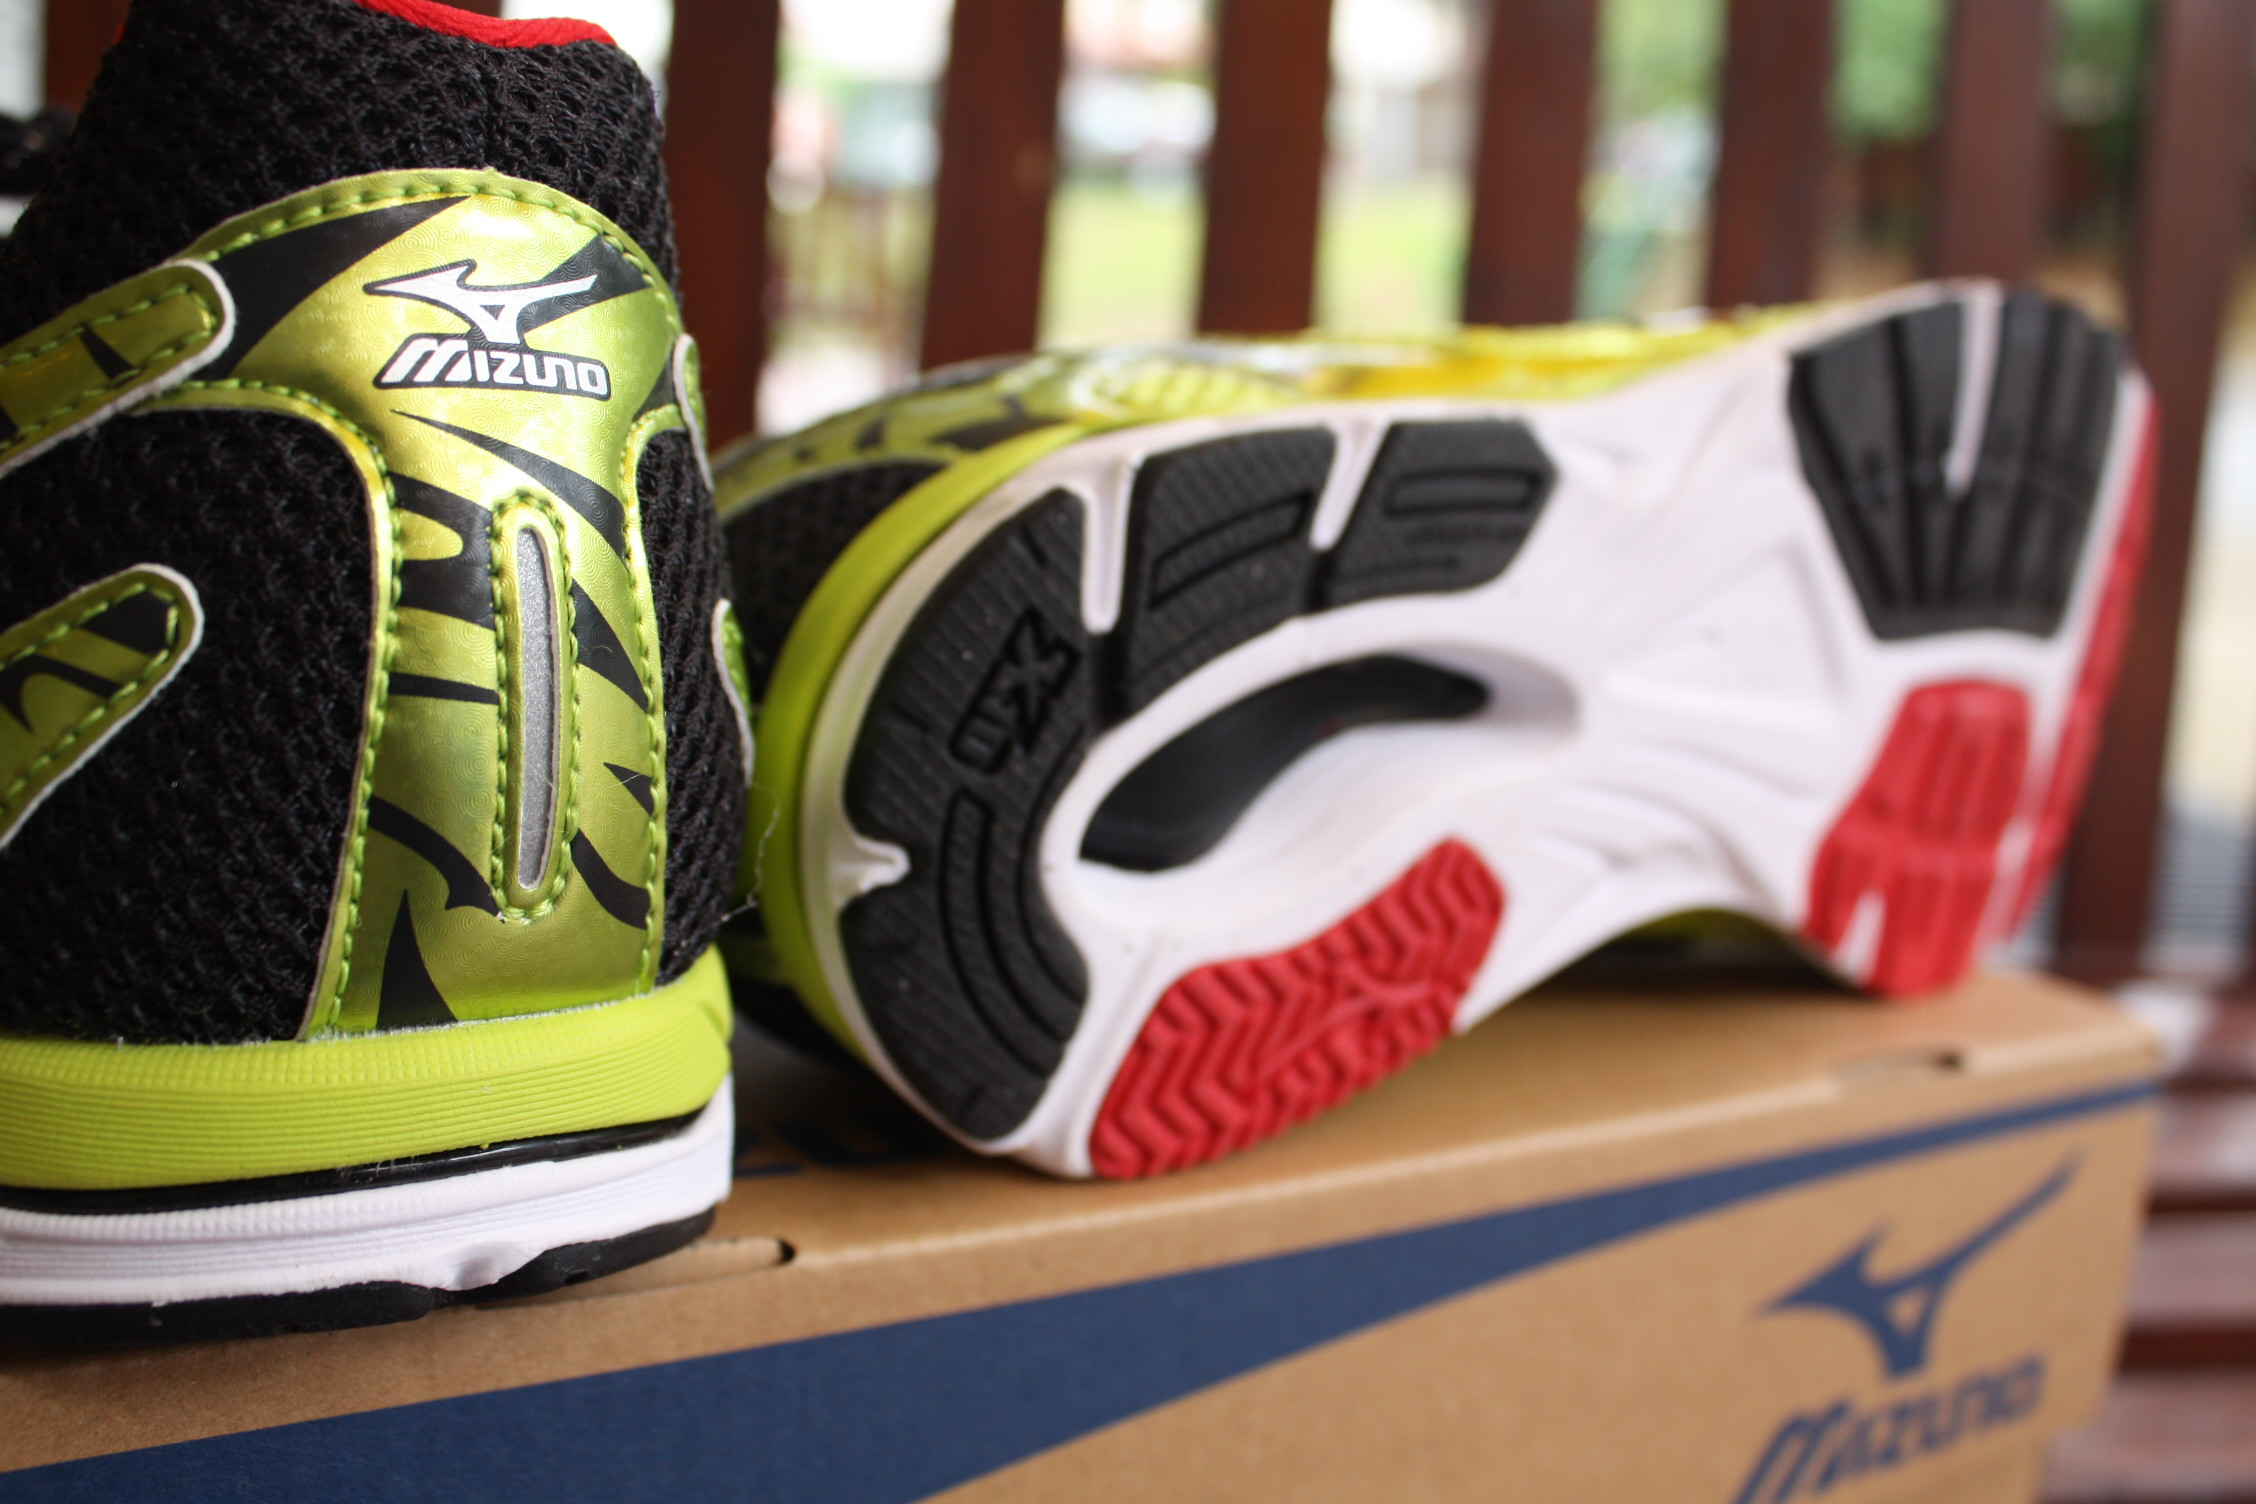 009430482bd5 The 5 Minute Review – Mizuno Wave Musha 4 | TRG